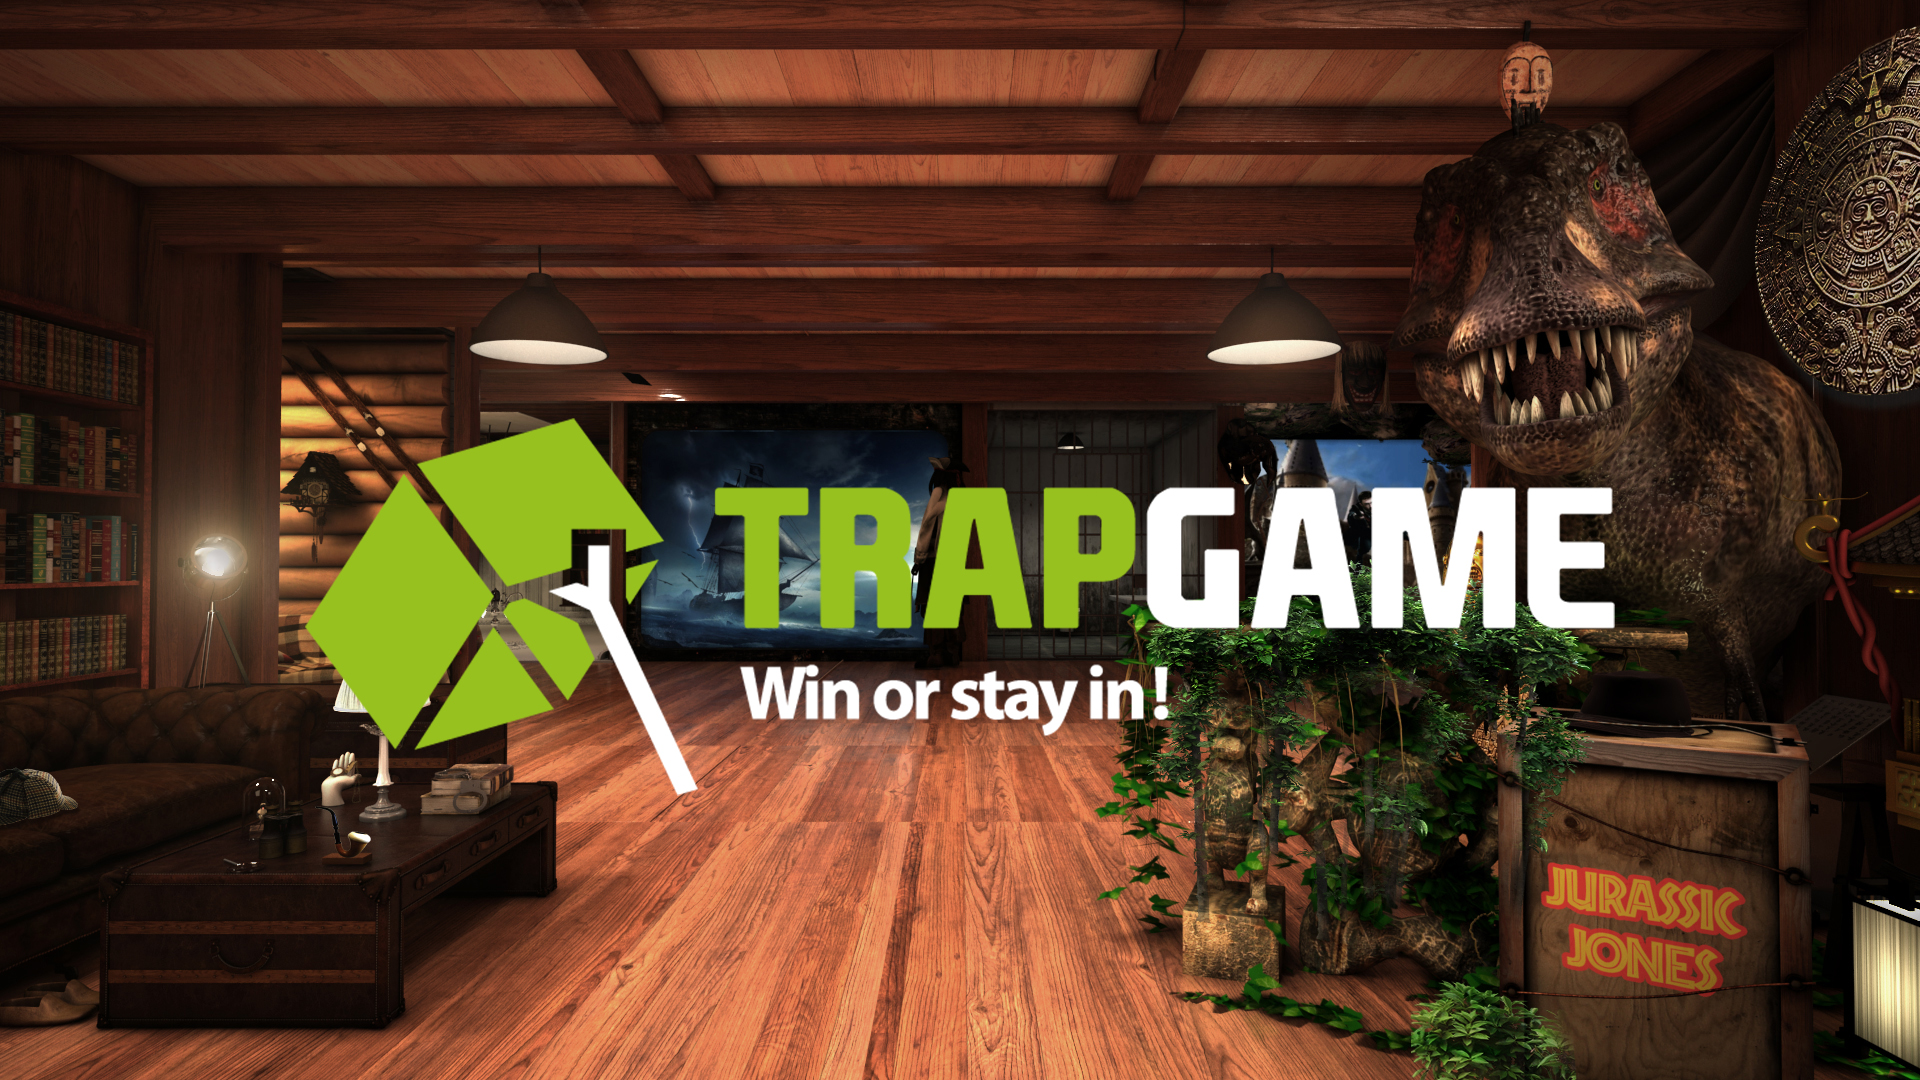 Trapgame Escape Room Valais Short Link Redirection